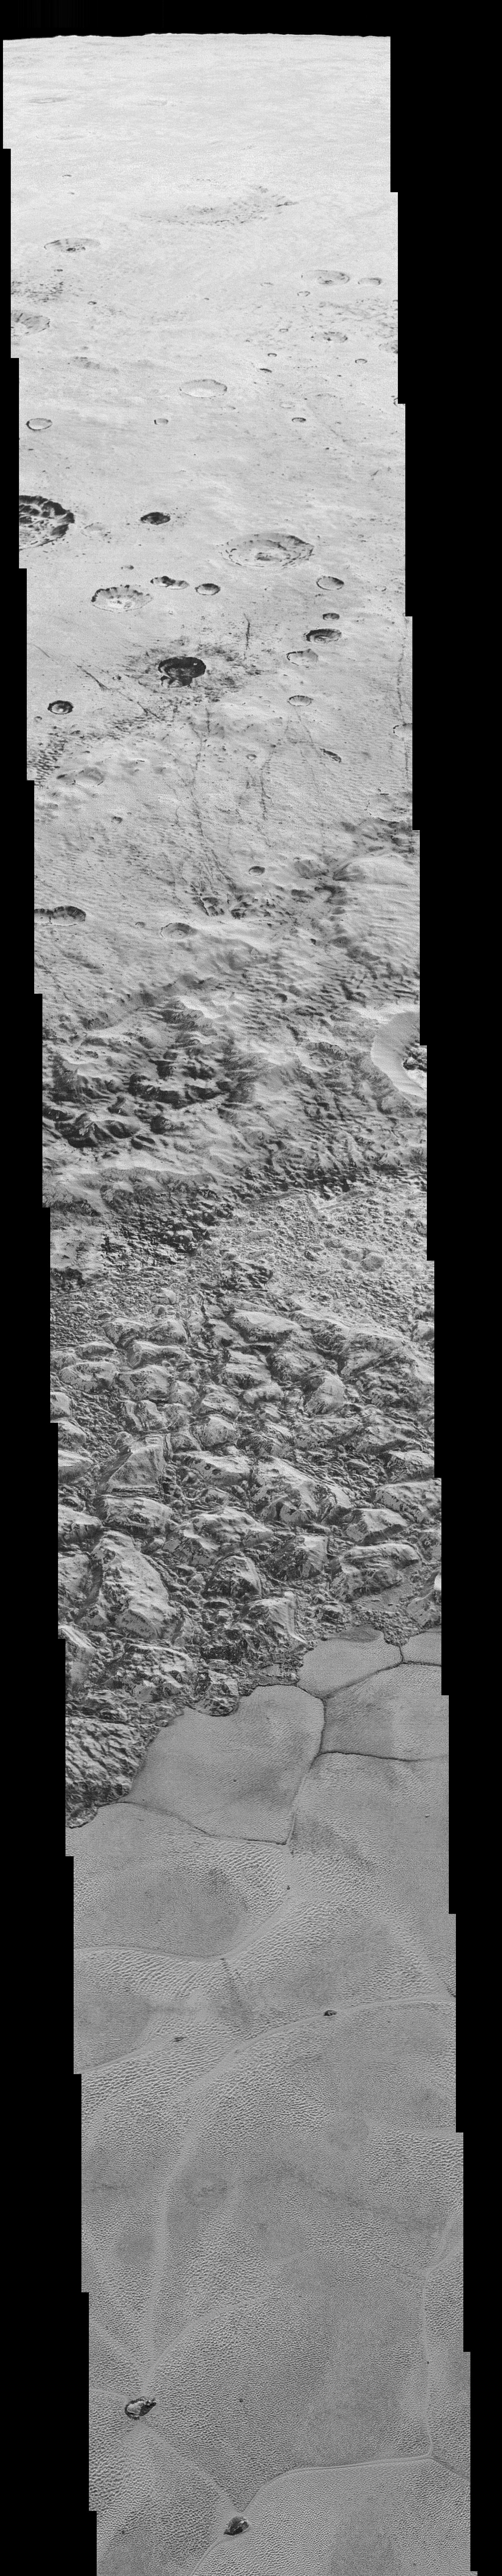 New Horizons : objectif Pluton - Page 6 Nh-craters-mountains-glaciers